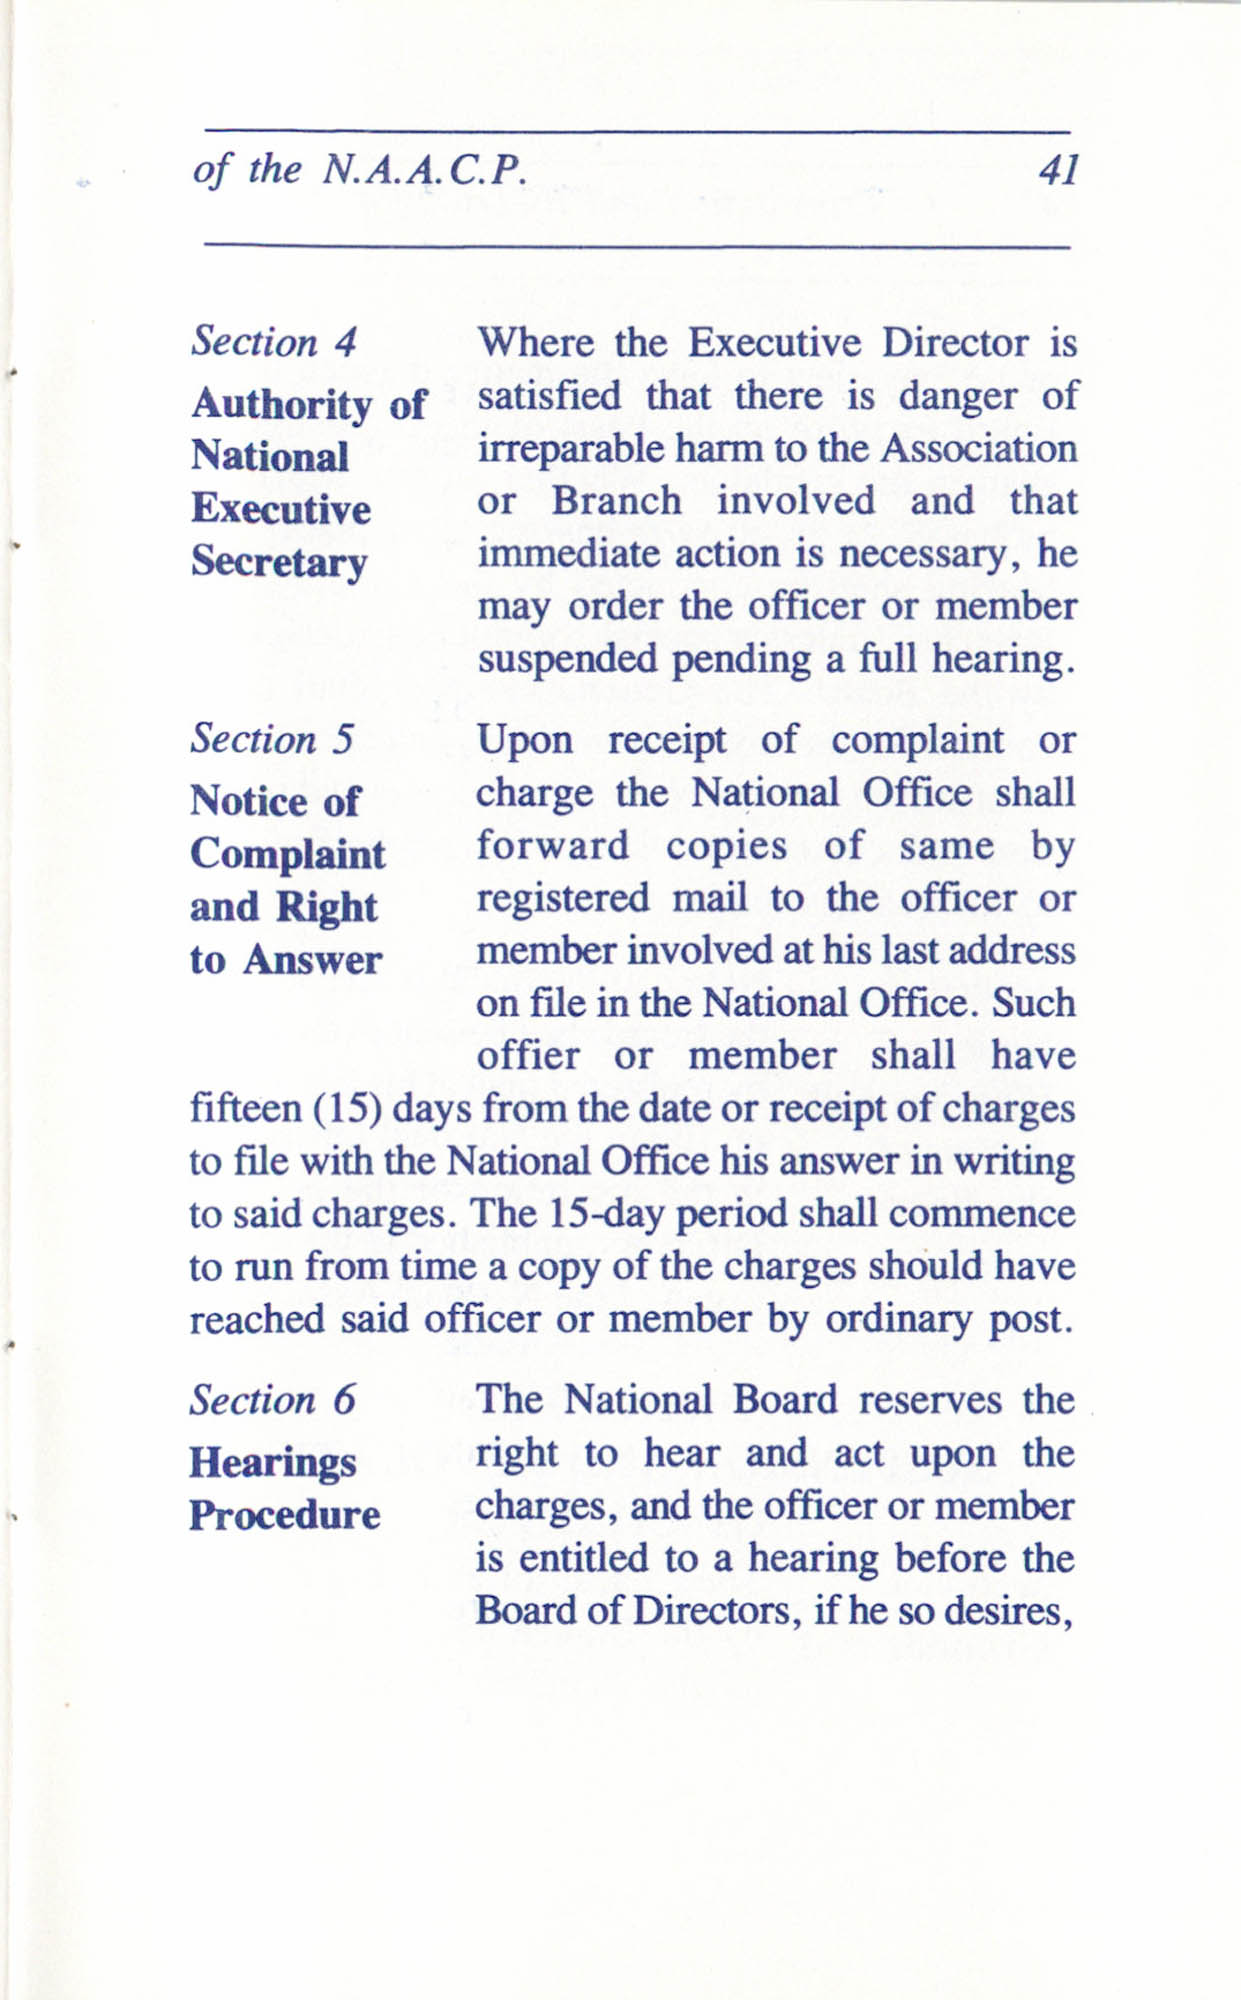 Constitution and By-Laws for Branches of the NAACP, June 1993, Page 41